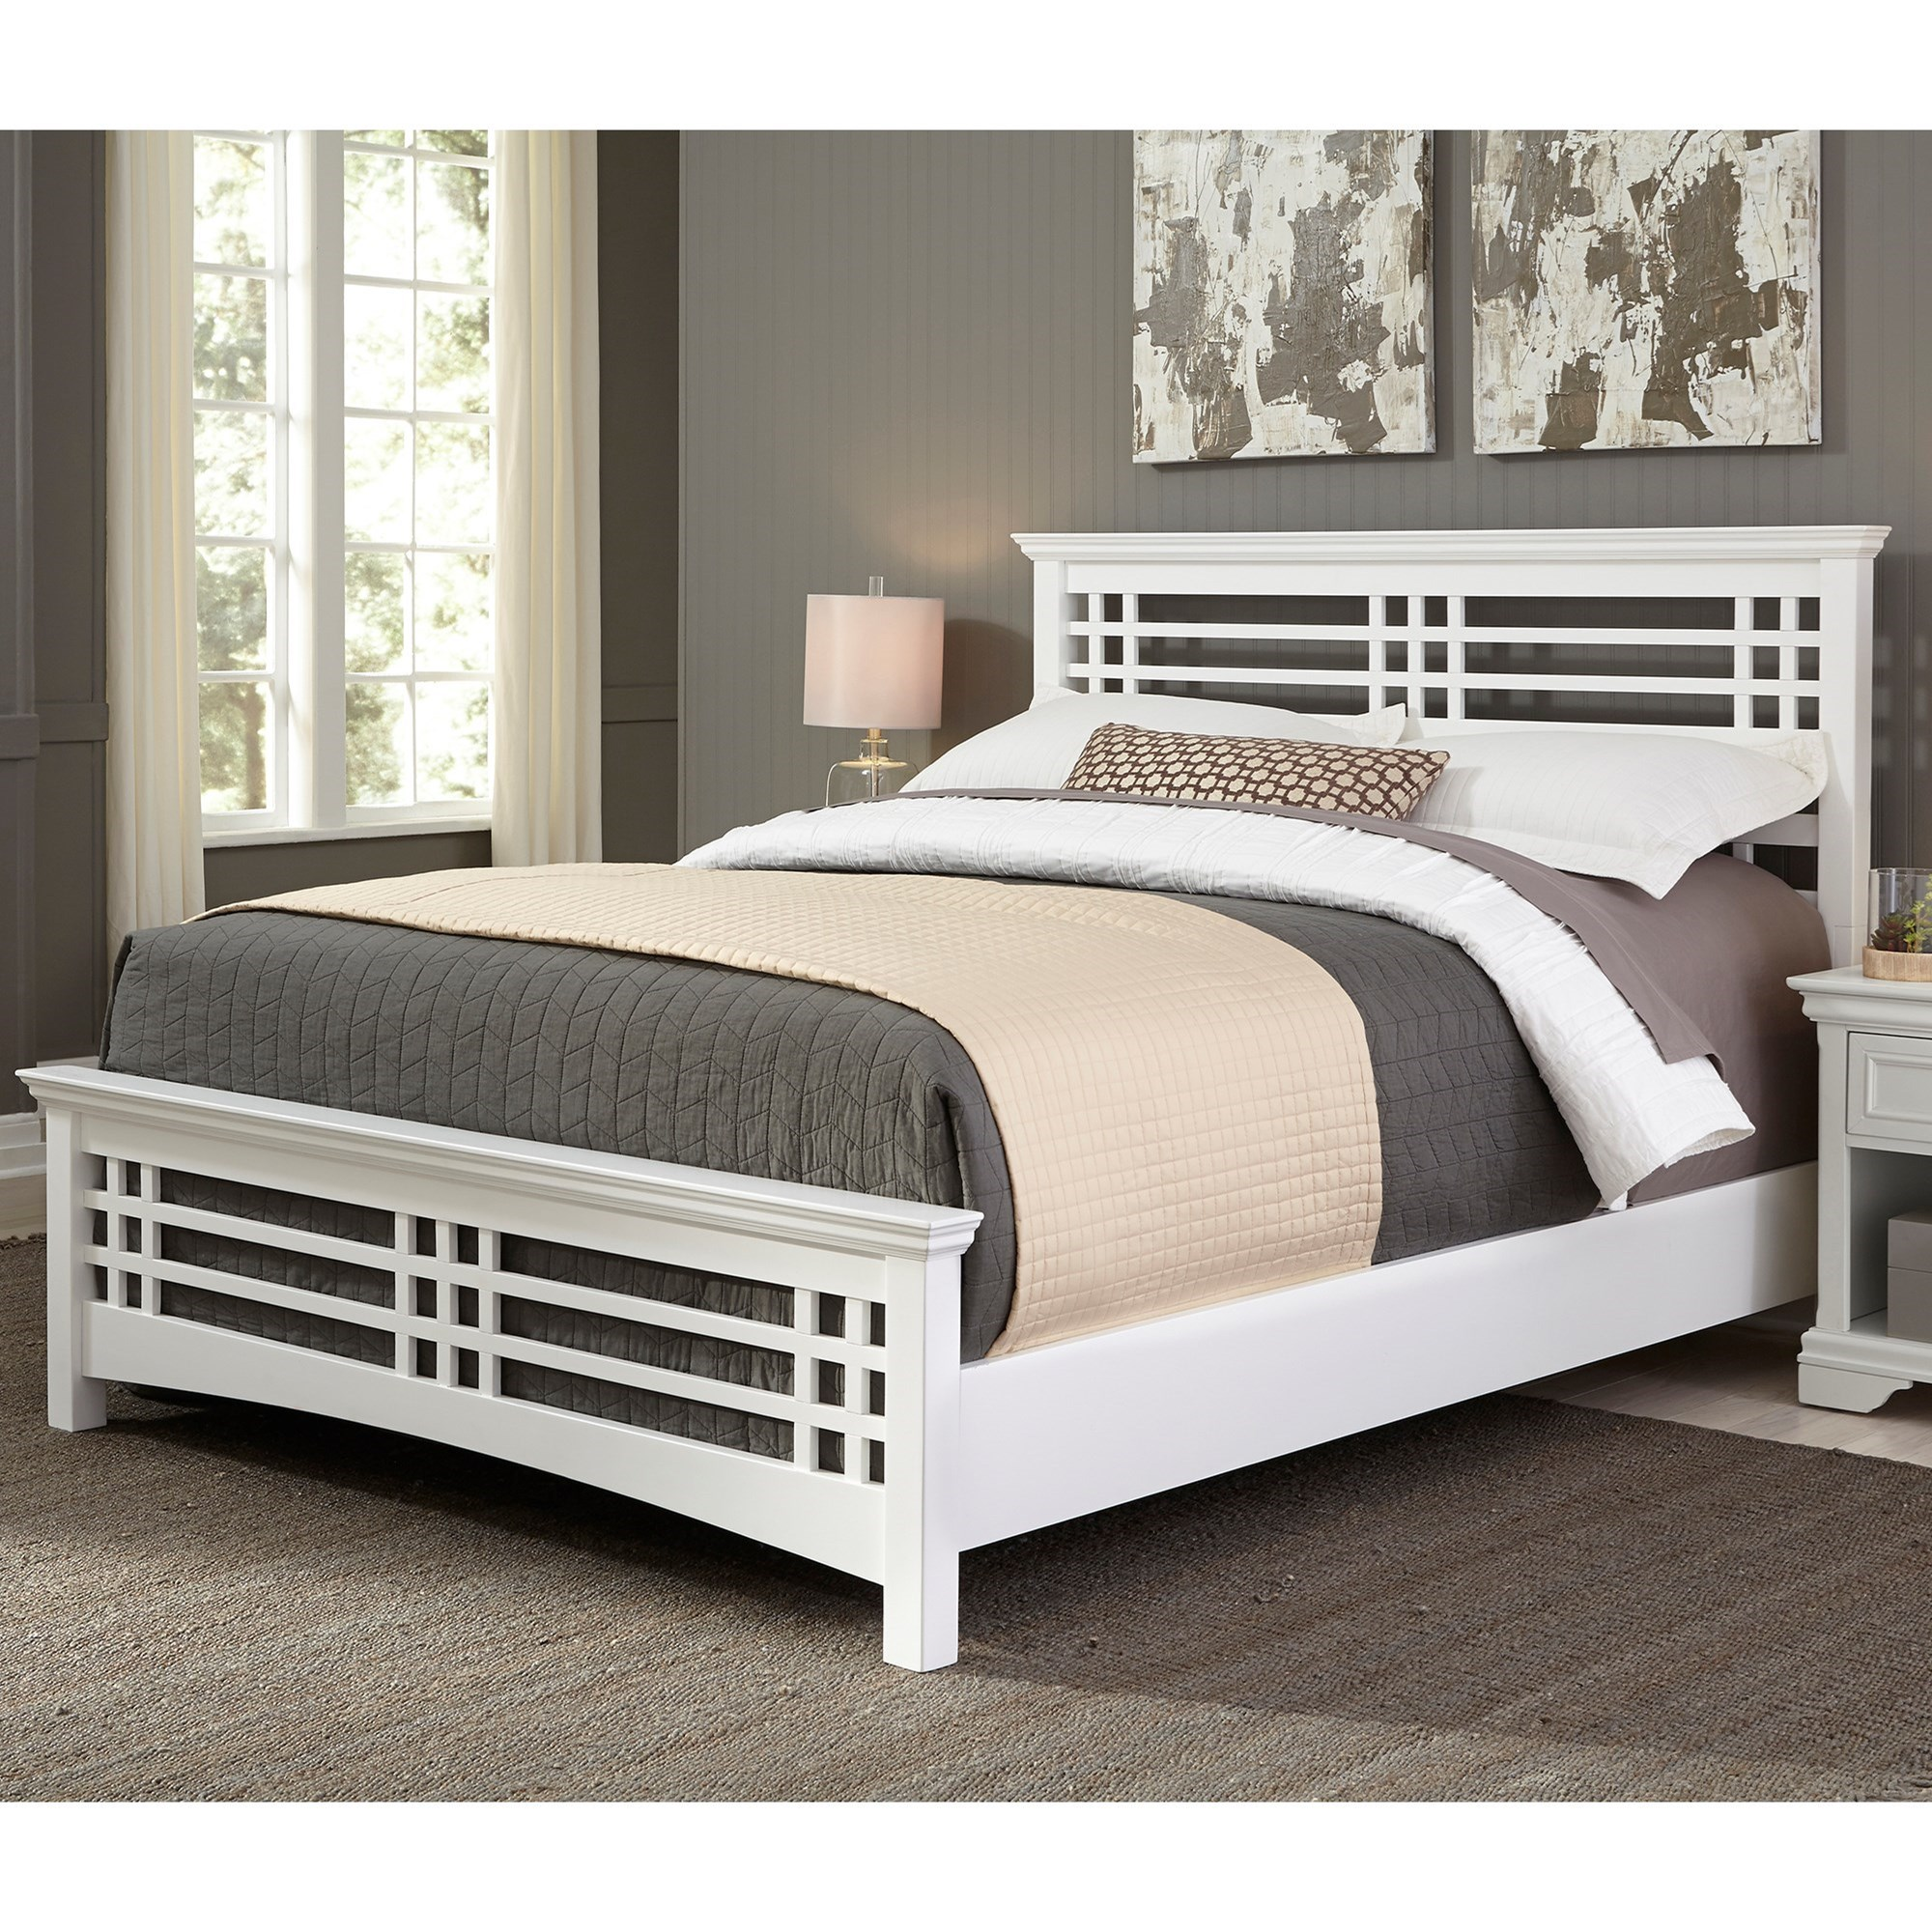 Fashion Bed Group Avery Avery King Bed With Wood Frame And